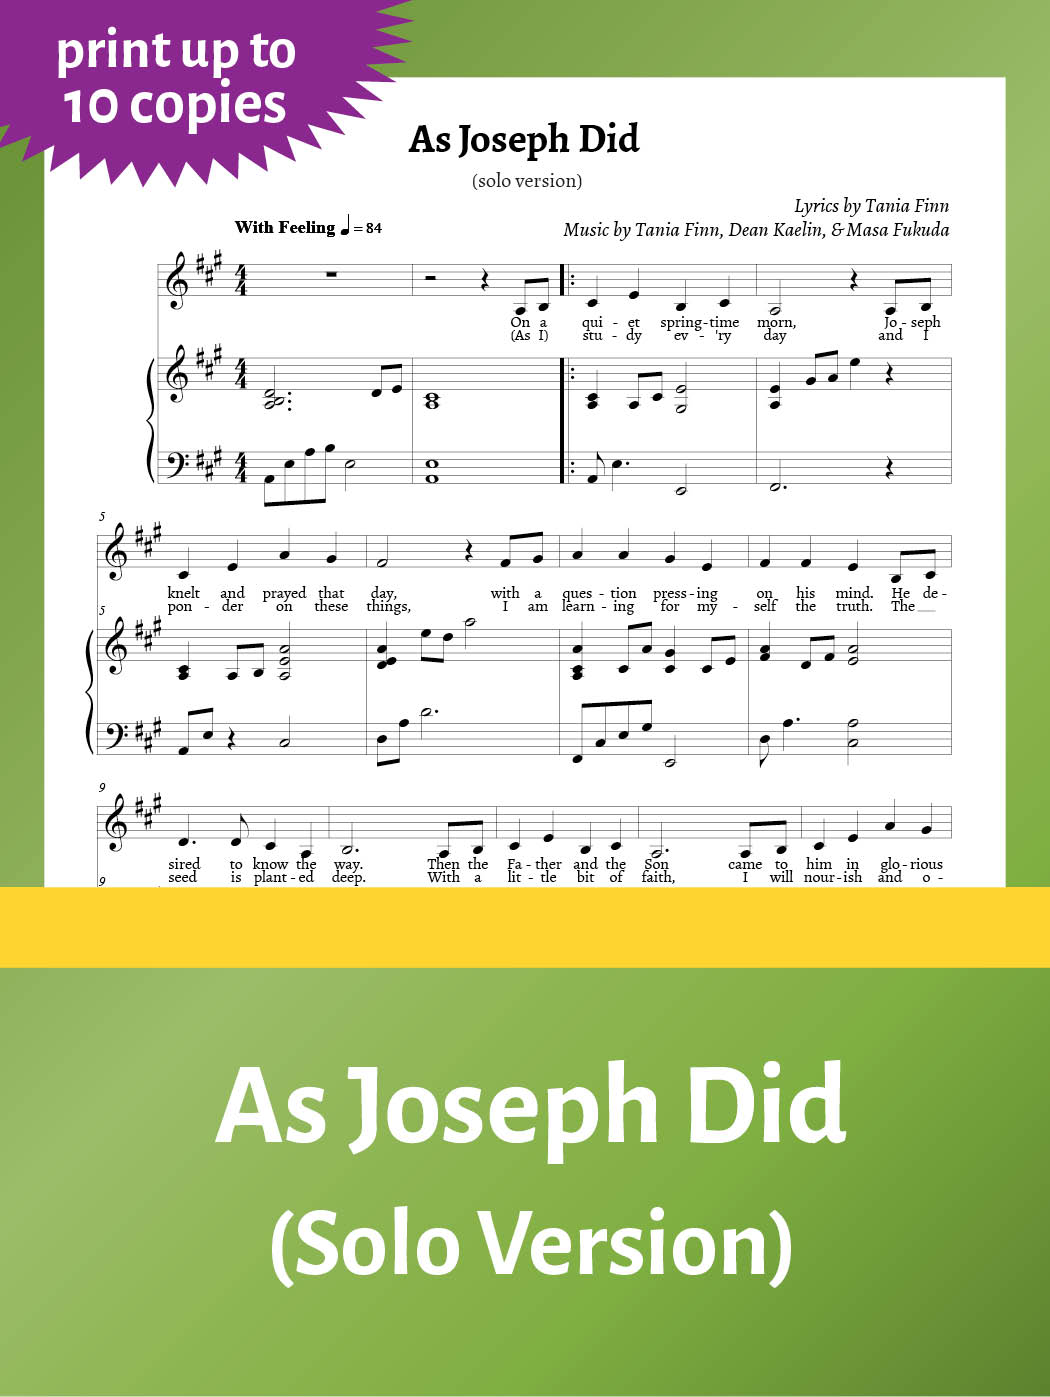 As Joseph Did – Sheet Music – solo – up to 10 copies